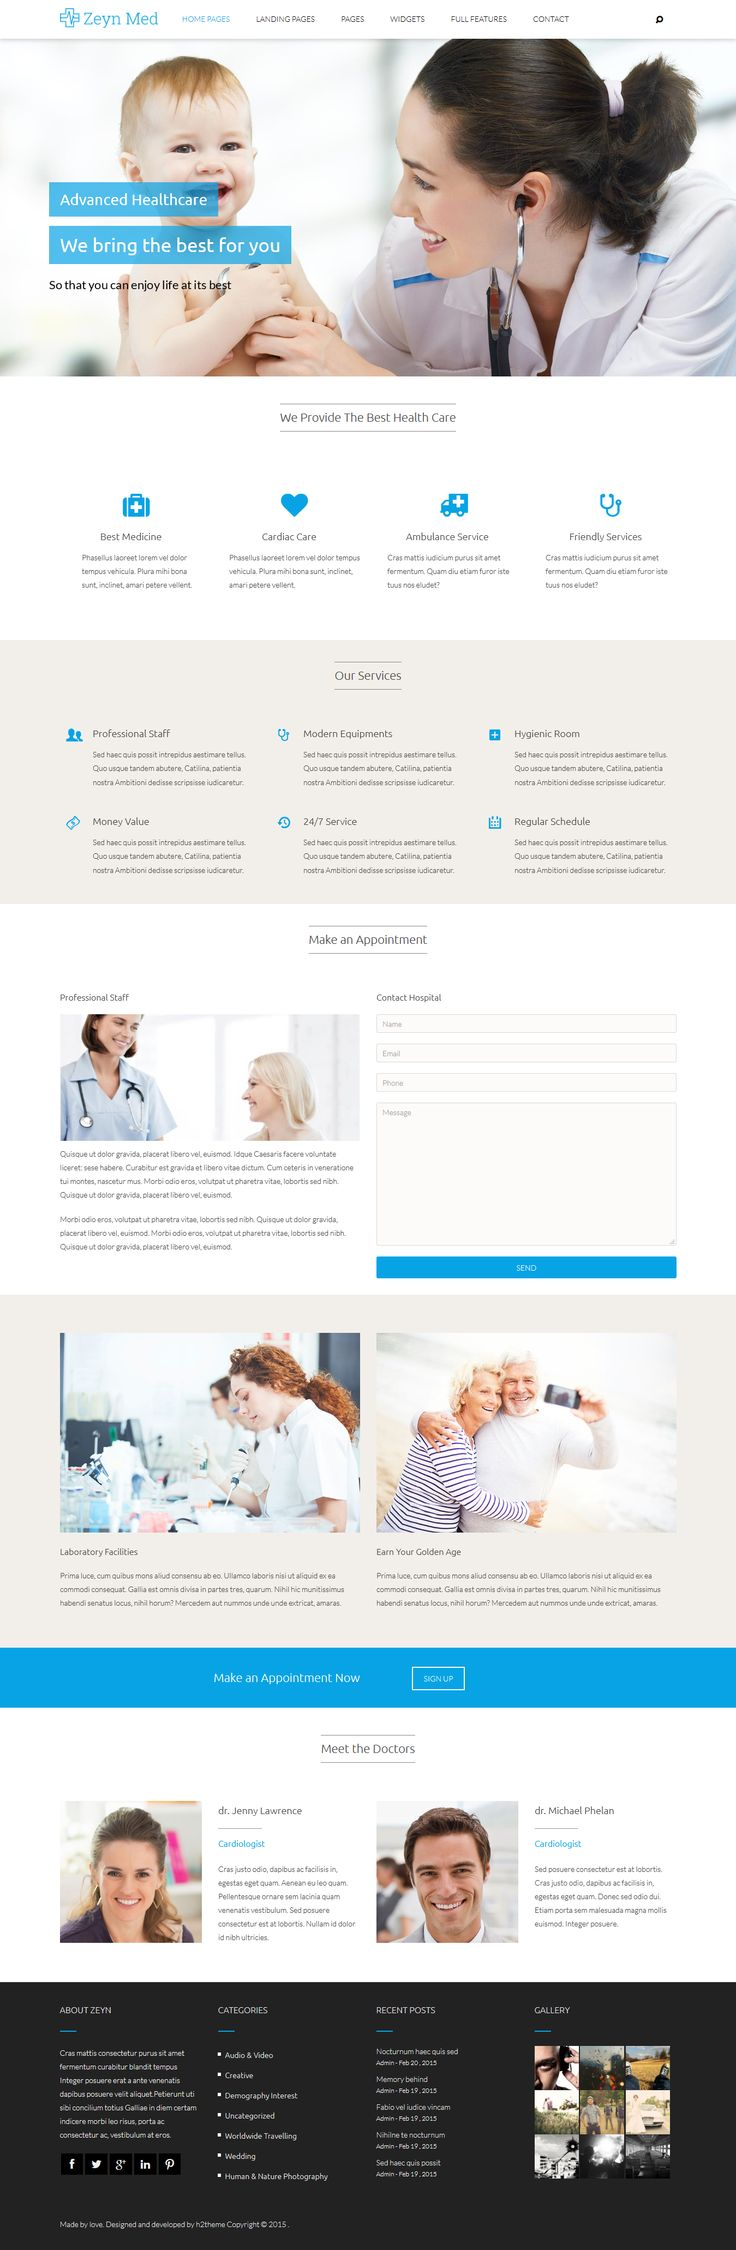 Zeyn is the most completed theme ever released for #Joomla ! It powered by new warp 7.3 framework , HTML 5 , CSS 3 , LESS and UIKIT. Zeyn with incredible flexibility is suitable for every site like corporate, classic, modern, blog, #medical, law #website.